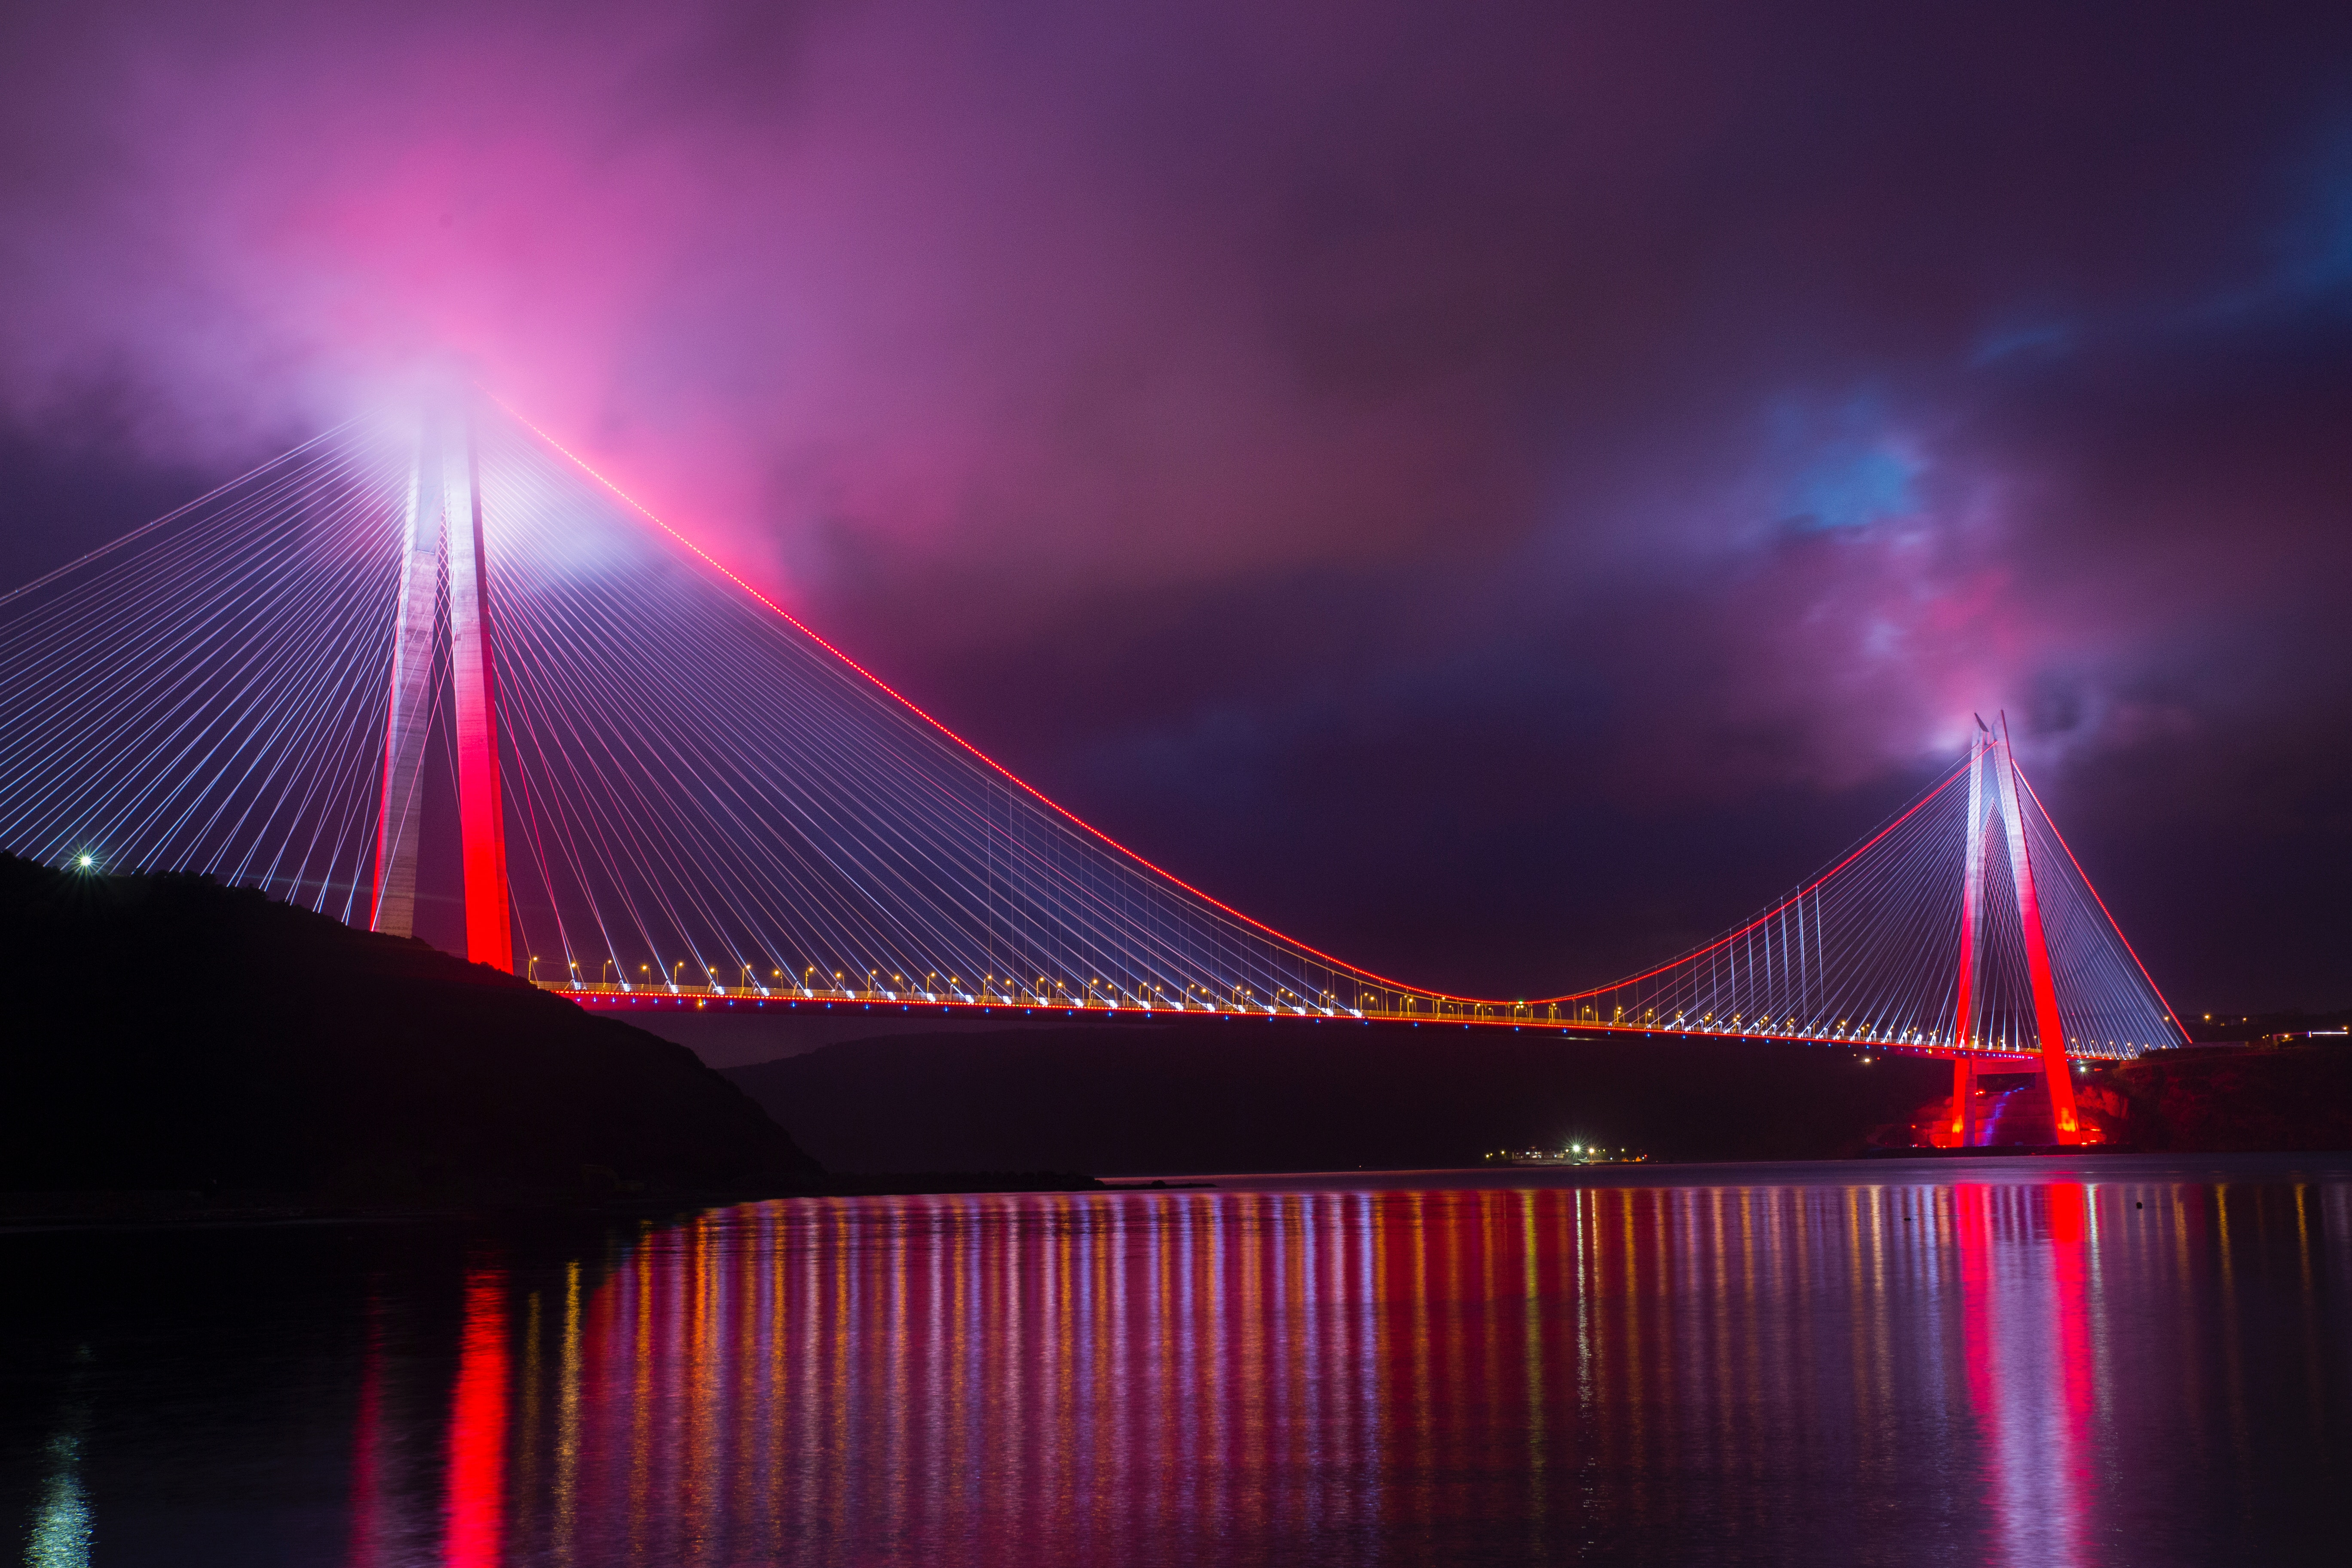 85478 Screensavers and Wallpapers Night City for phone. Download Design, Cities, Night City, Bridge, Construction, Backlight, Illumination, Turkey pictures for free